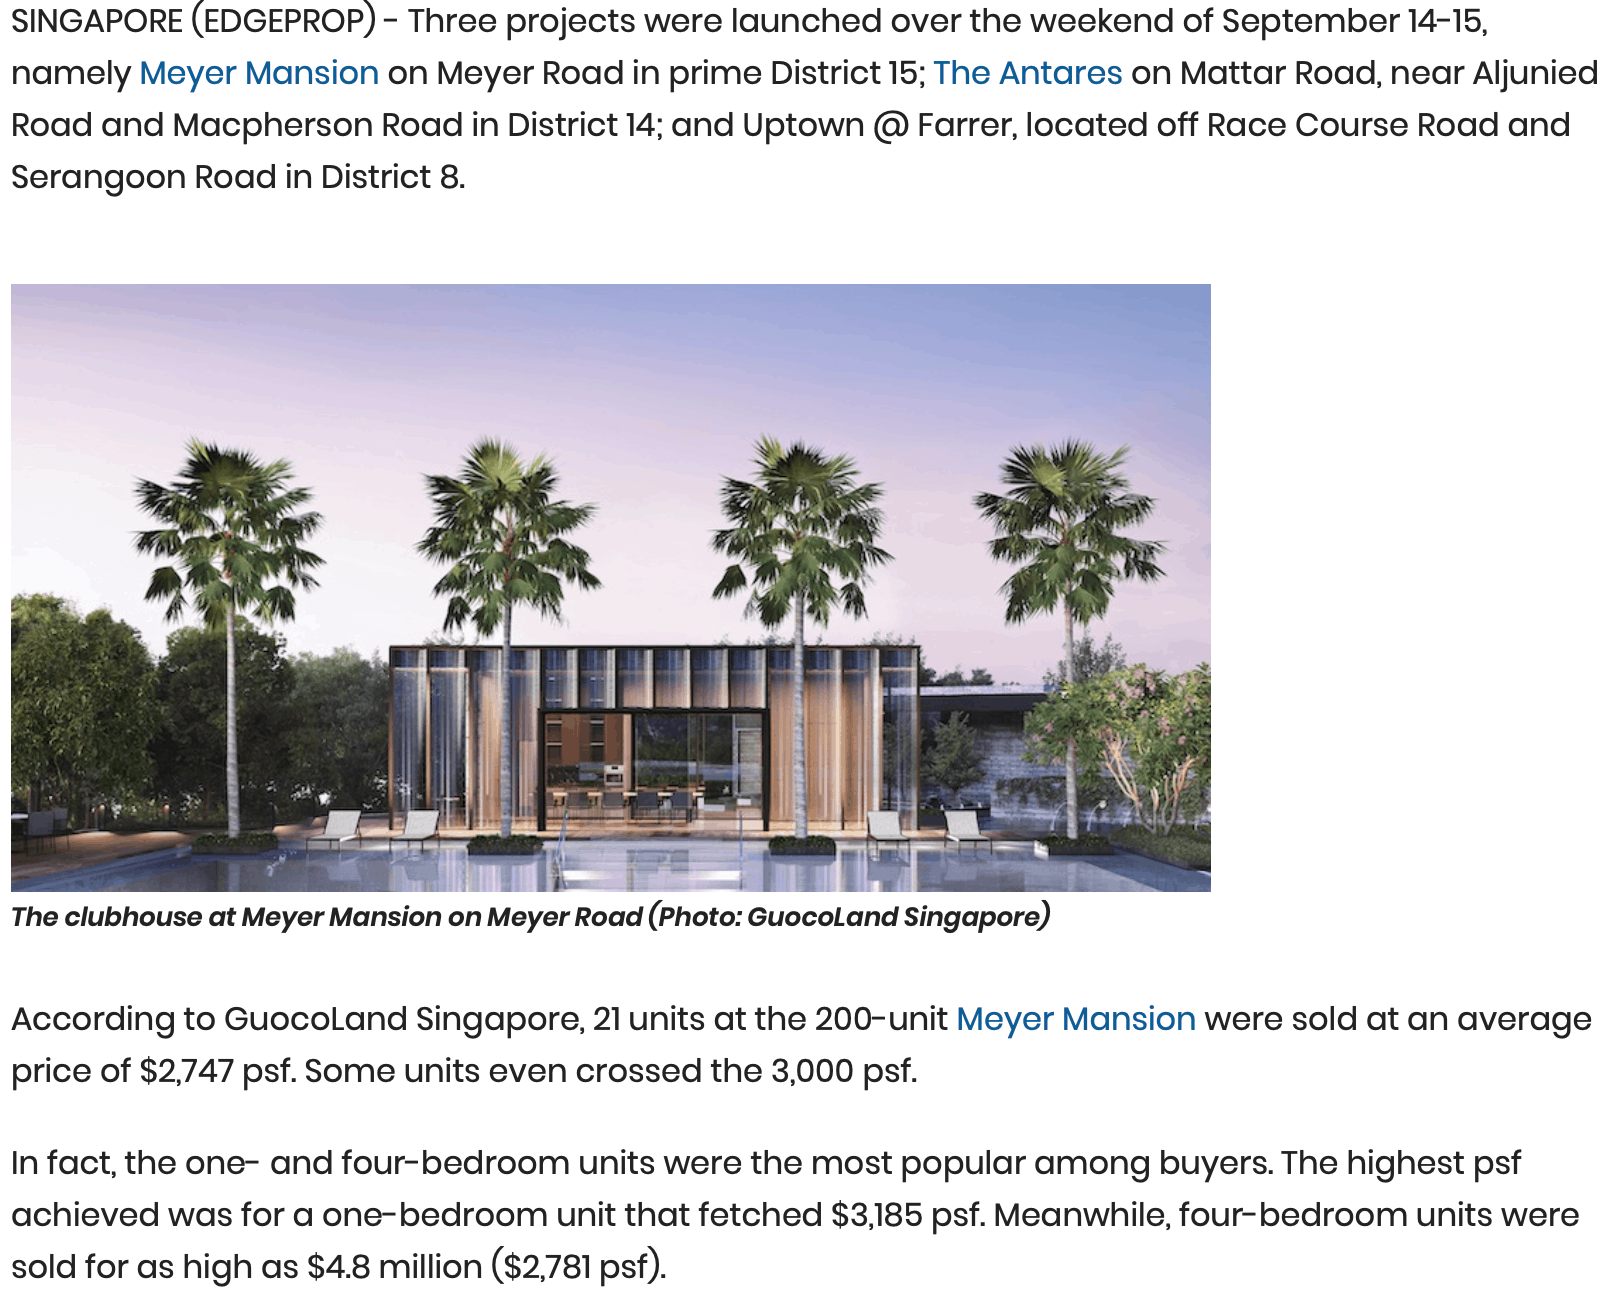 New - Meyer Mansion Tops Launch Sales